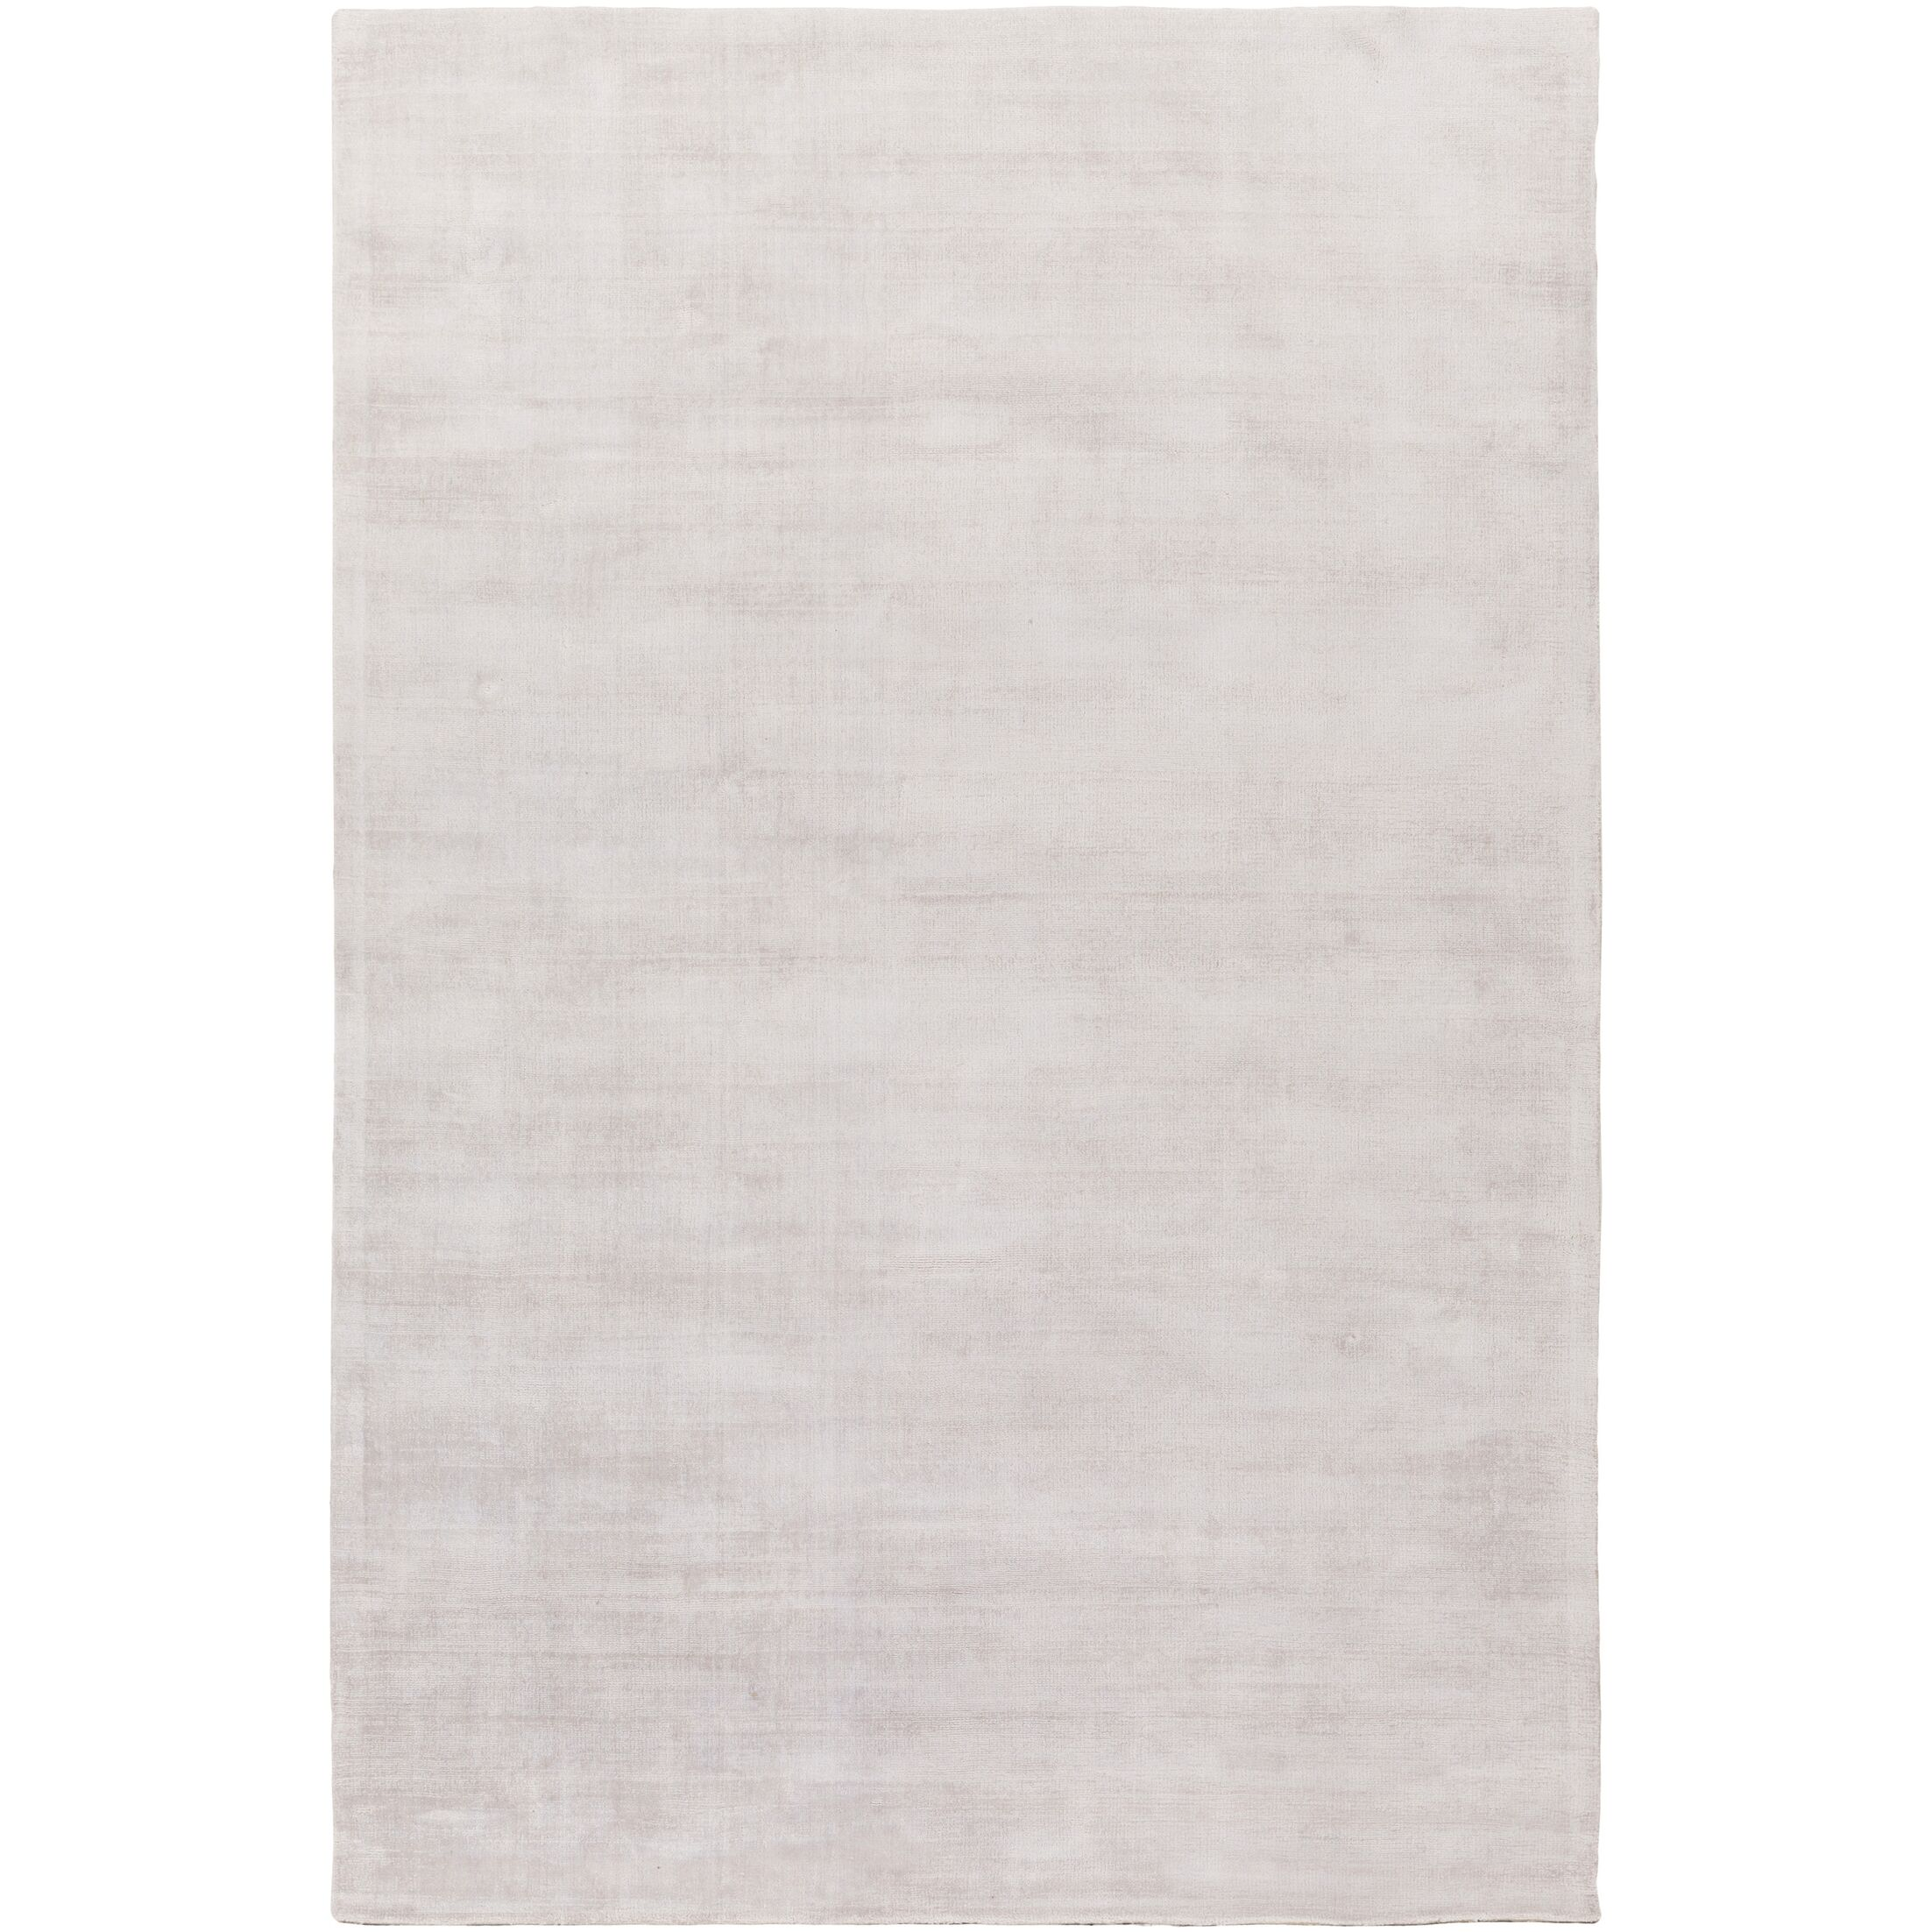 Goldston Hand-Loomed Taupe Area Rug Rug Size: Rectangle 9' x 13'